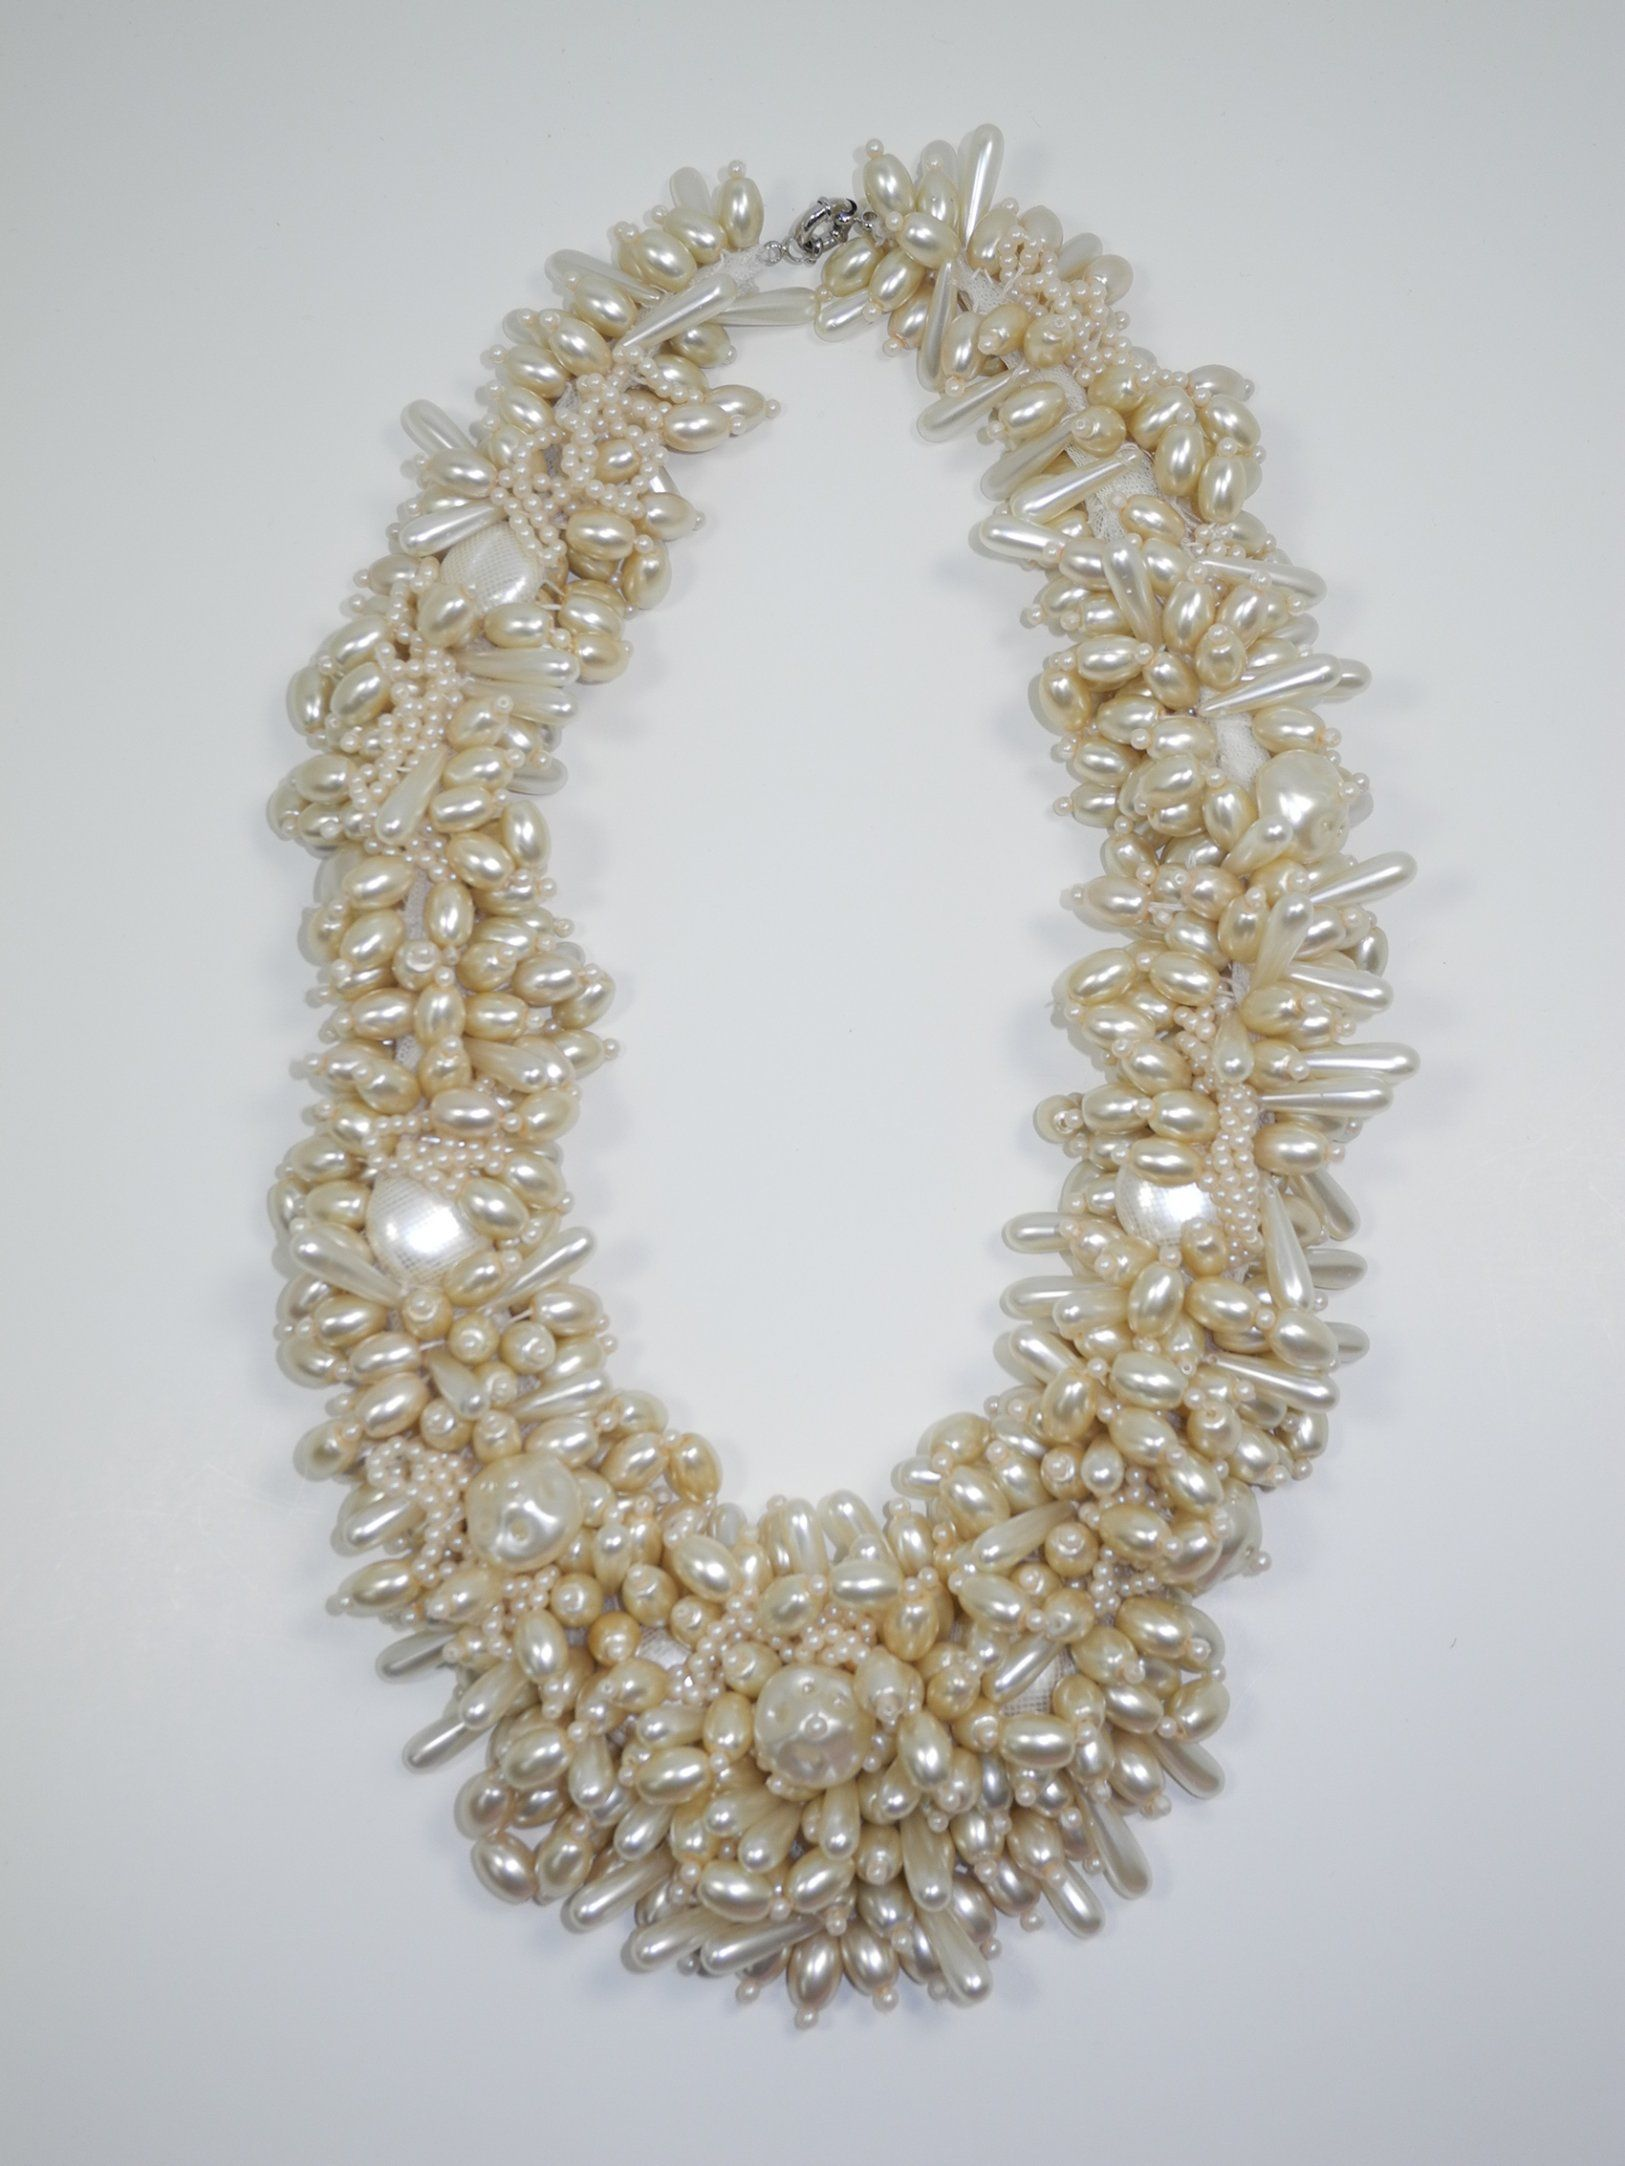 Chunky vintage inspired glass pearls embroidered on a soft tulle. Gorgeous for any occasion. @DeslaCouture